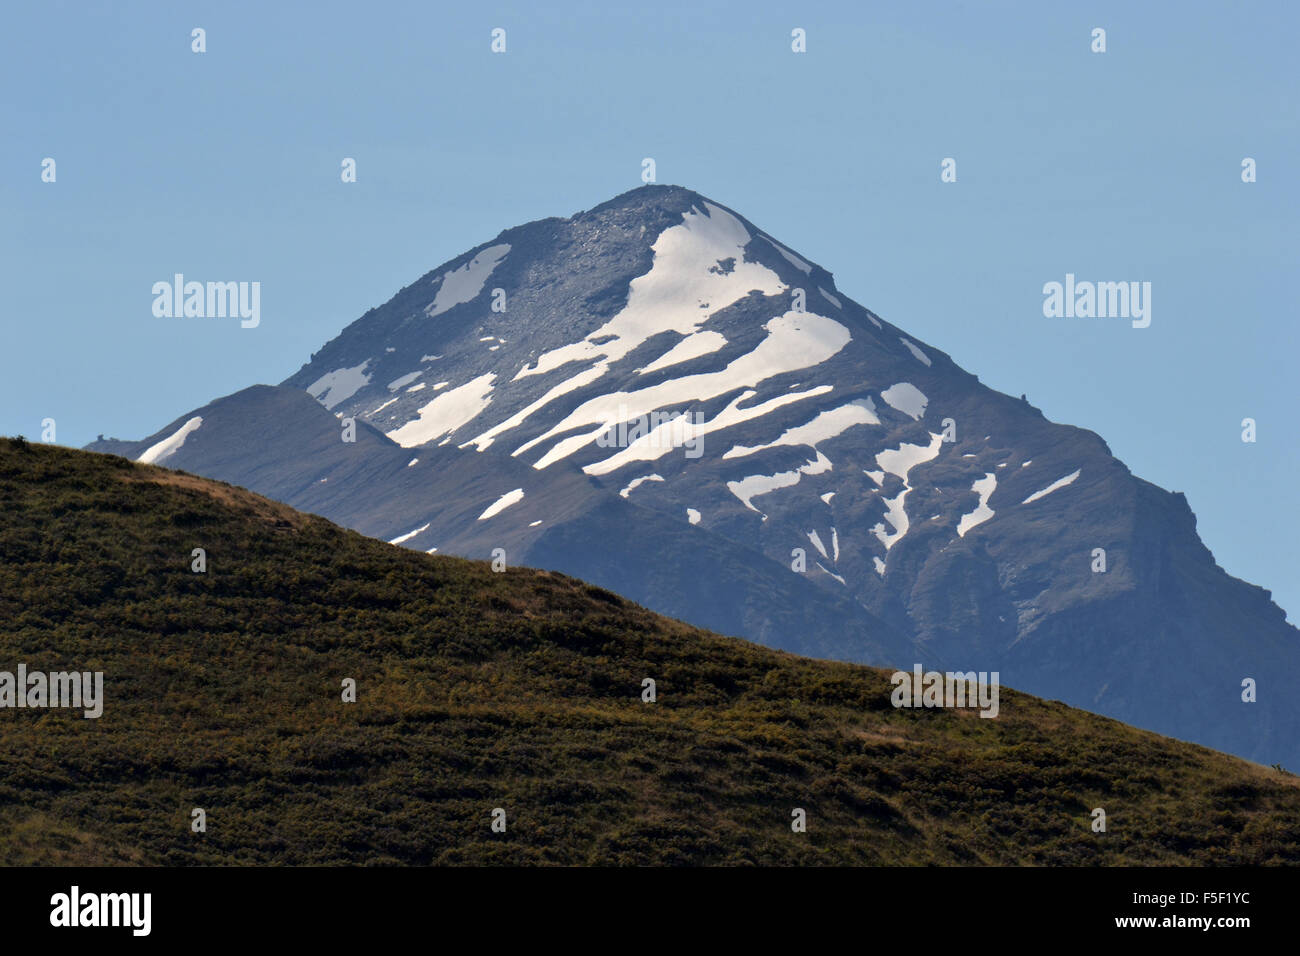 Summer snow coverage of Mount Aspiring, South Island, New Zealand - Stock Image